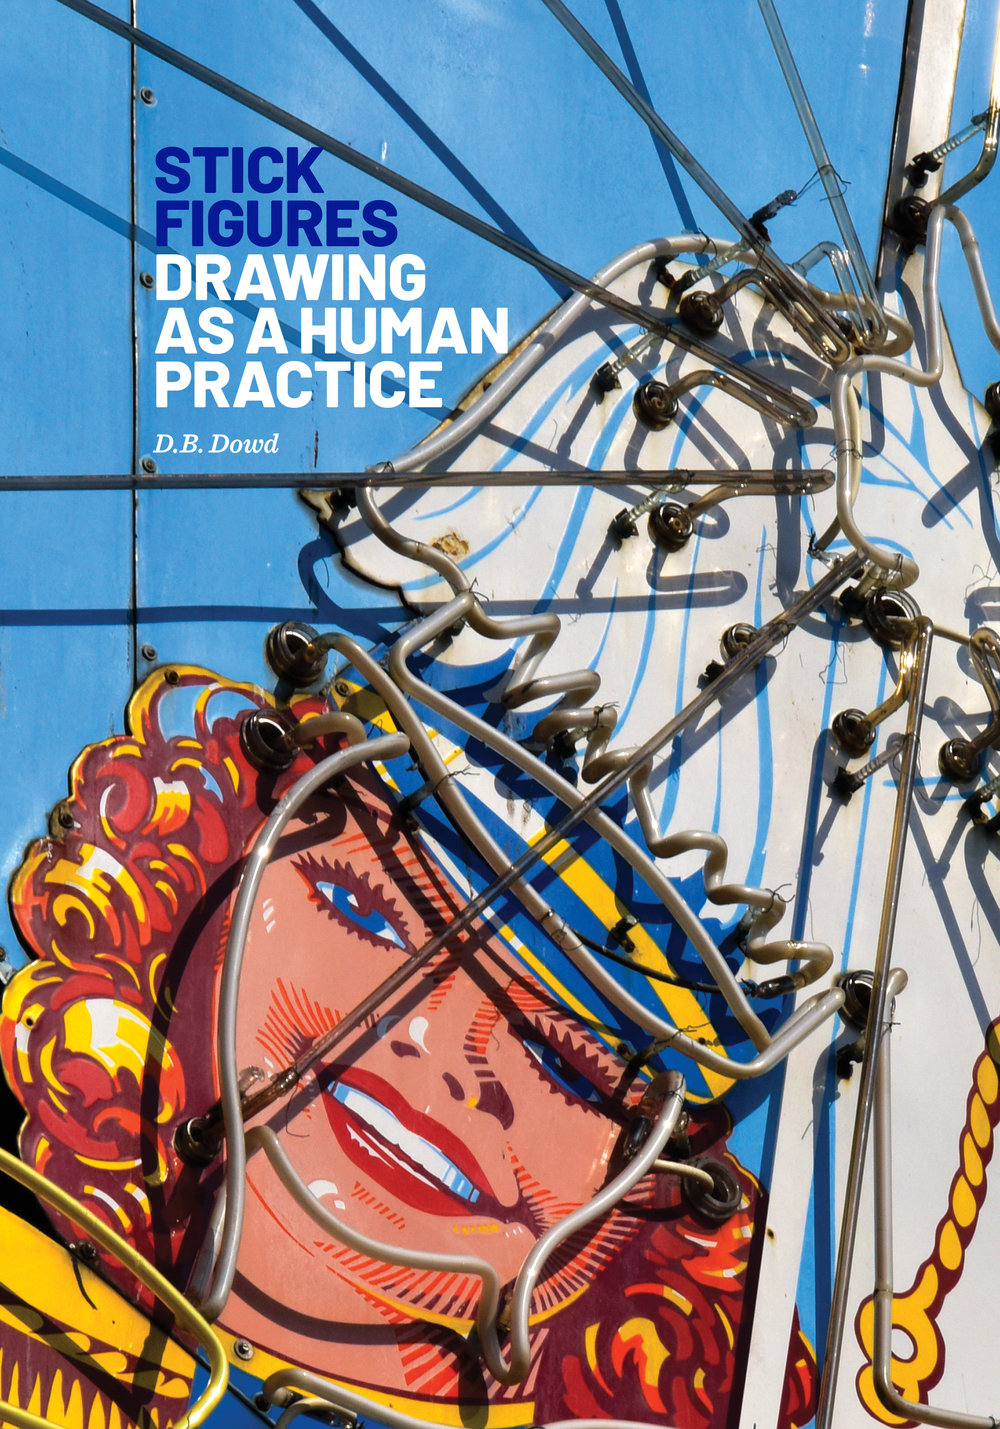 Scott Gericke, cover design,  Stick Figures: Drawing as a Human Practice . Published by Spartan Holiday Books and Norman Rockwell Museum, July 2018.Photograph by Stan Strembicki.